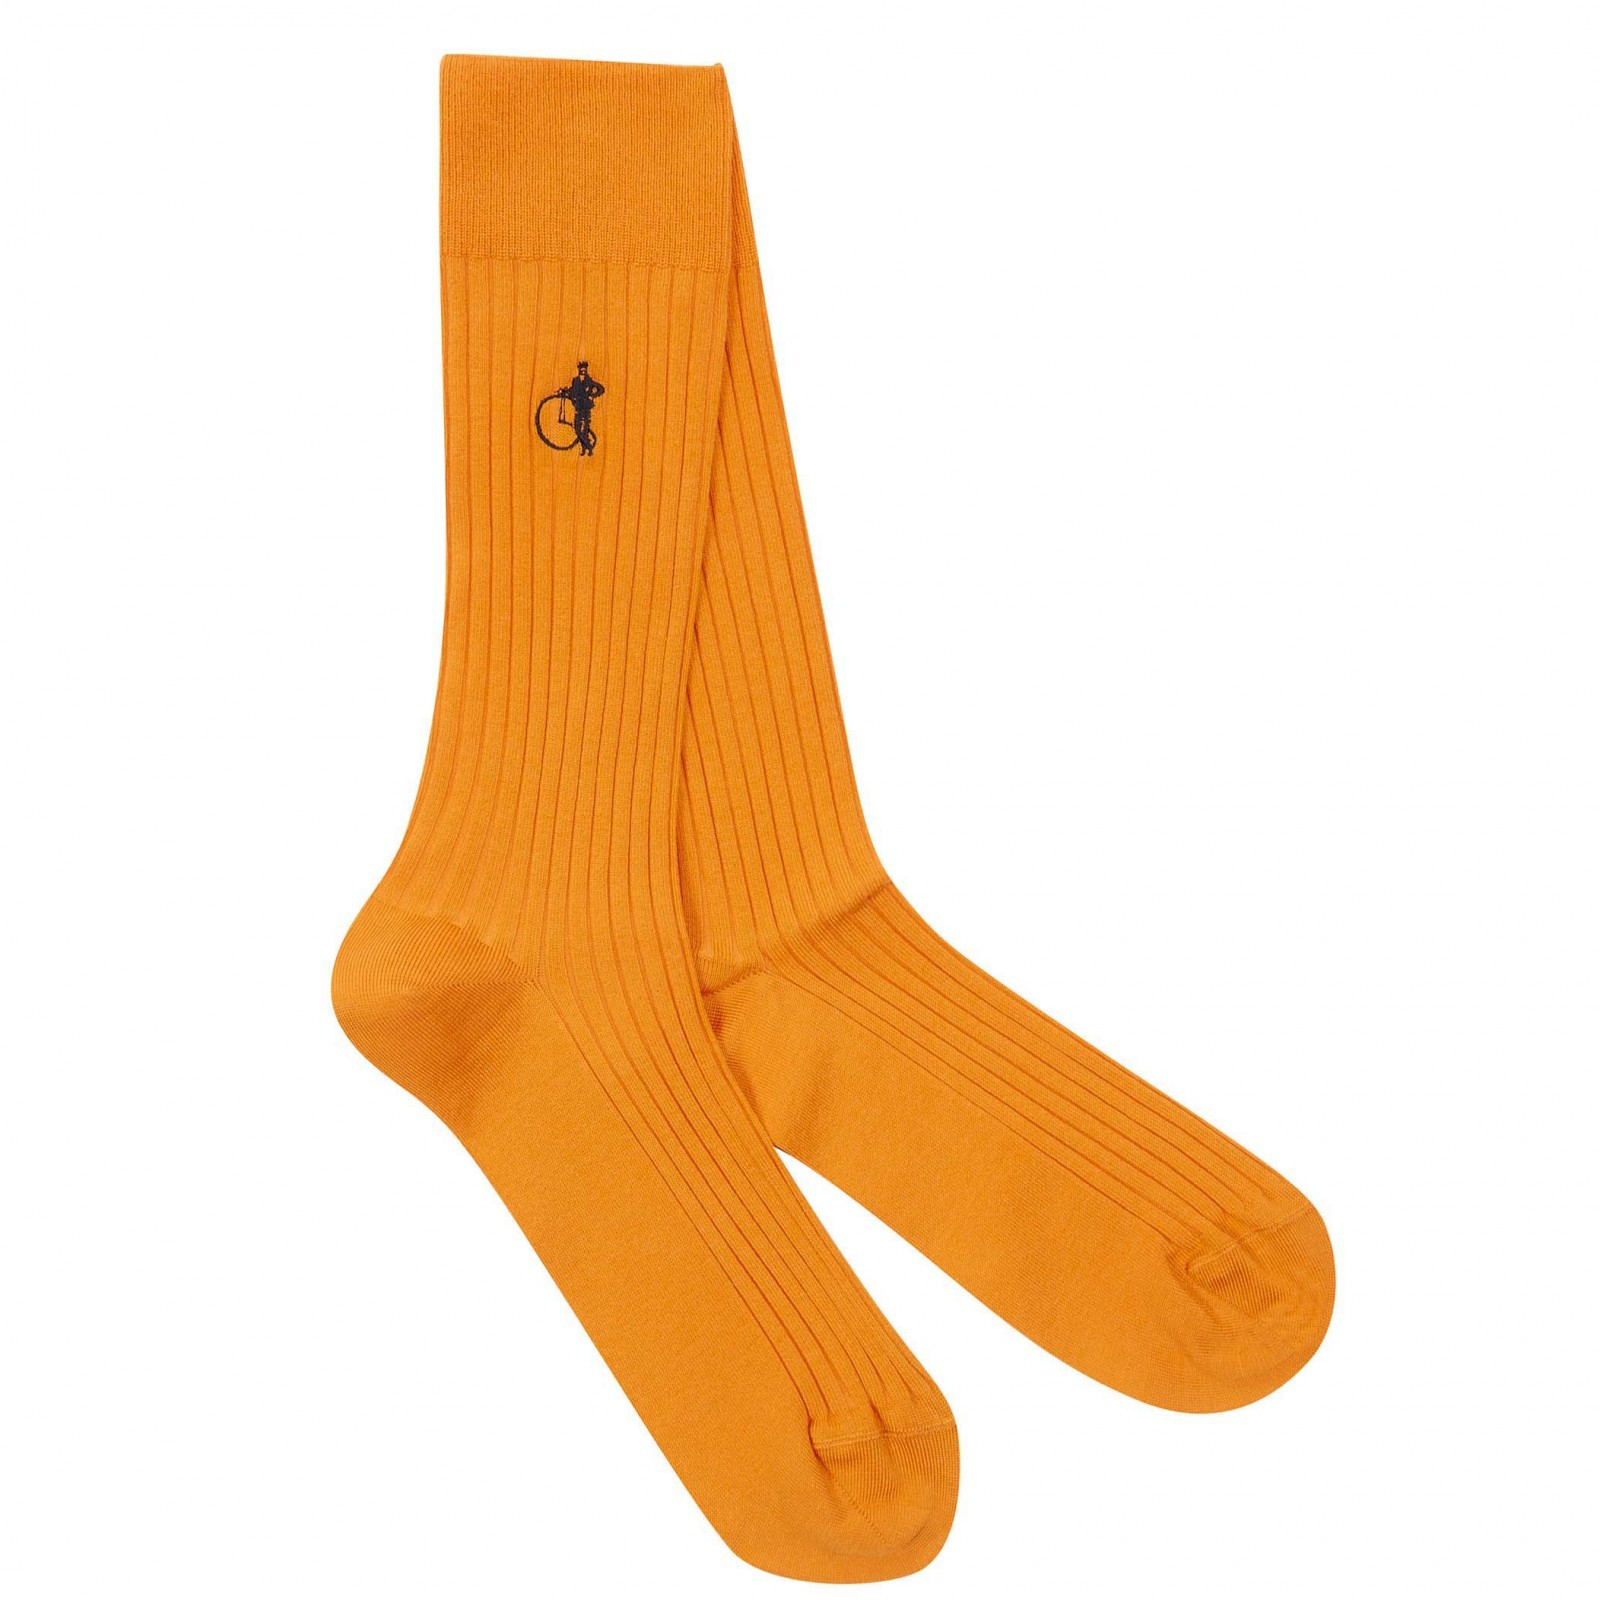 London Sock Co. SIMPLY SARTORIAL EAST INDIA SAFFRON